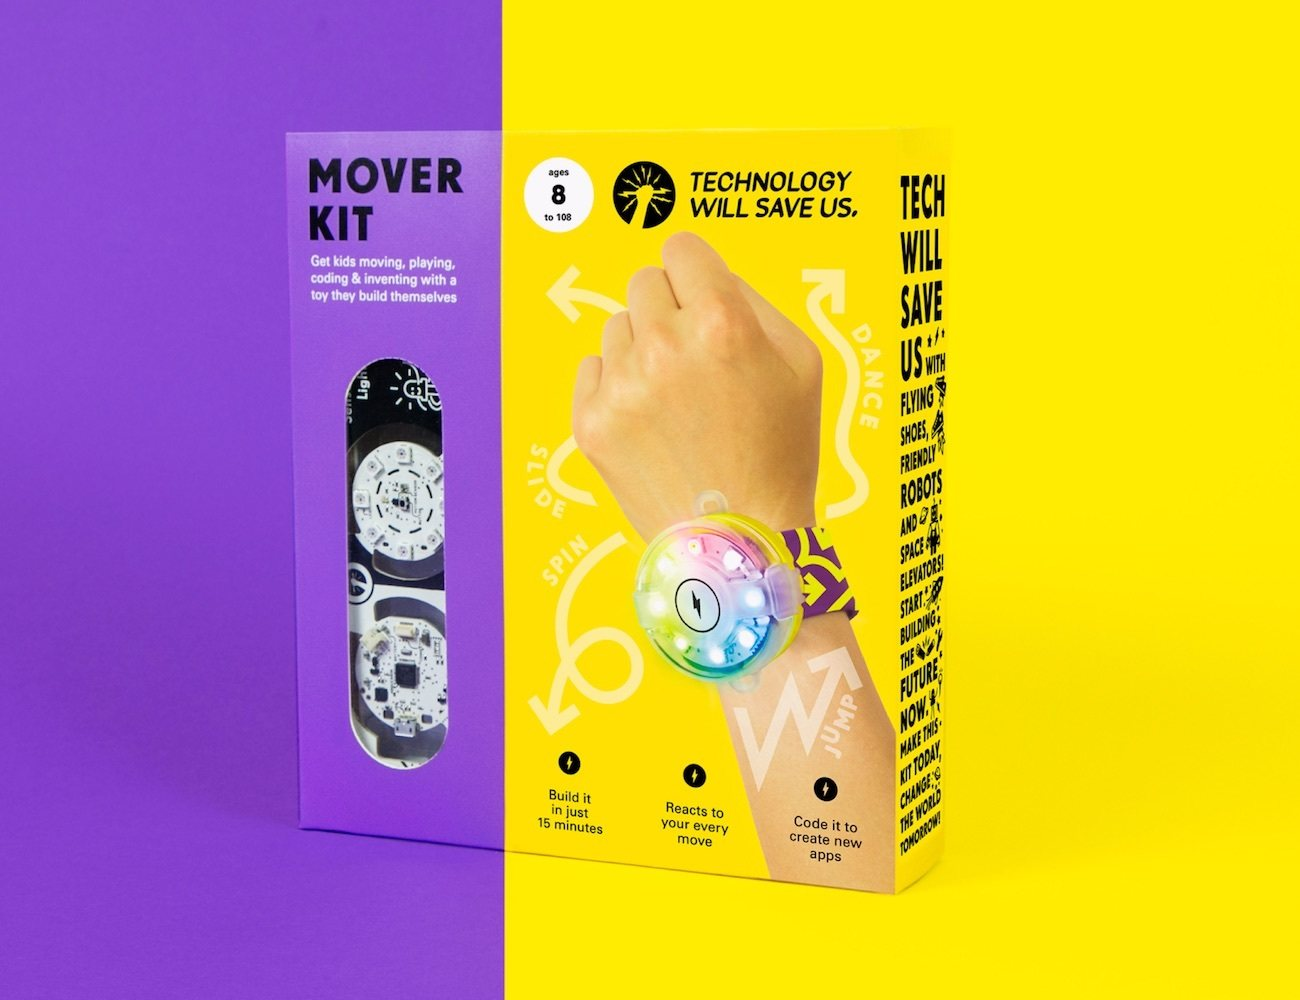 Mover Kit from Technology Will Save Us